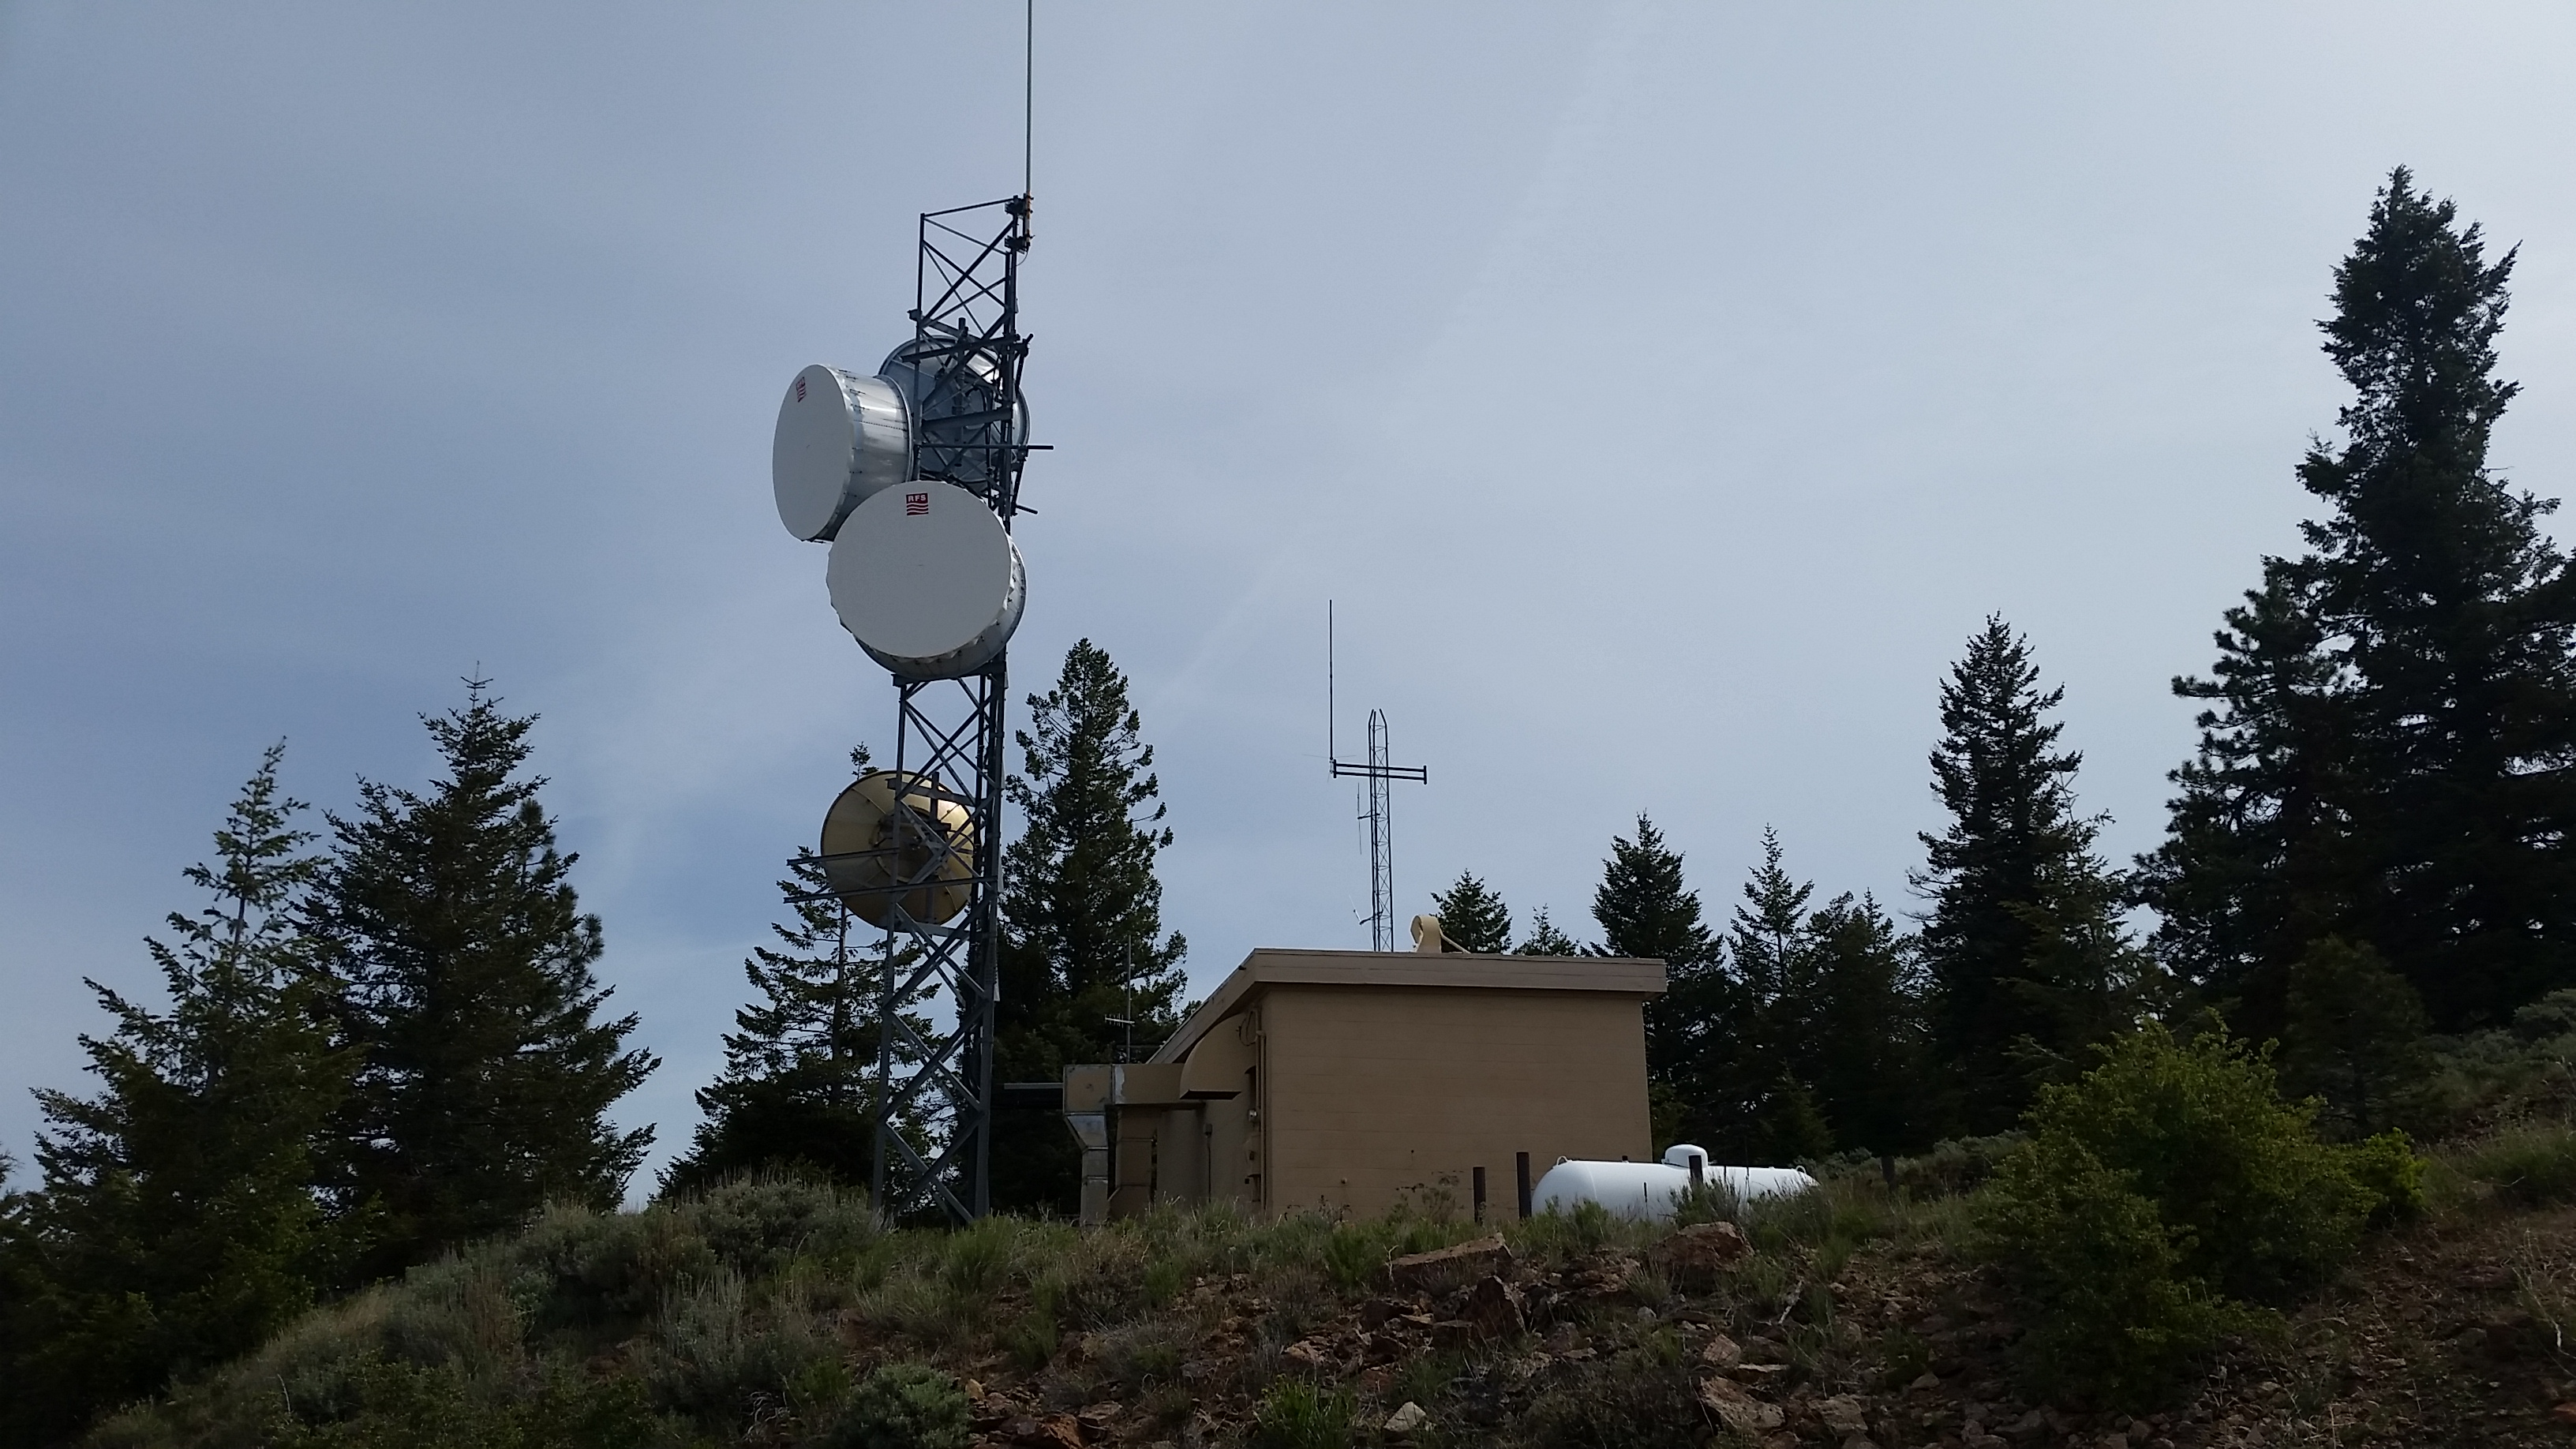 Day Wireless Systems Acquires 33 Communications Towers in the Northwest